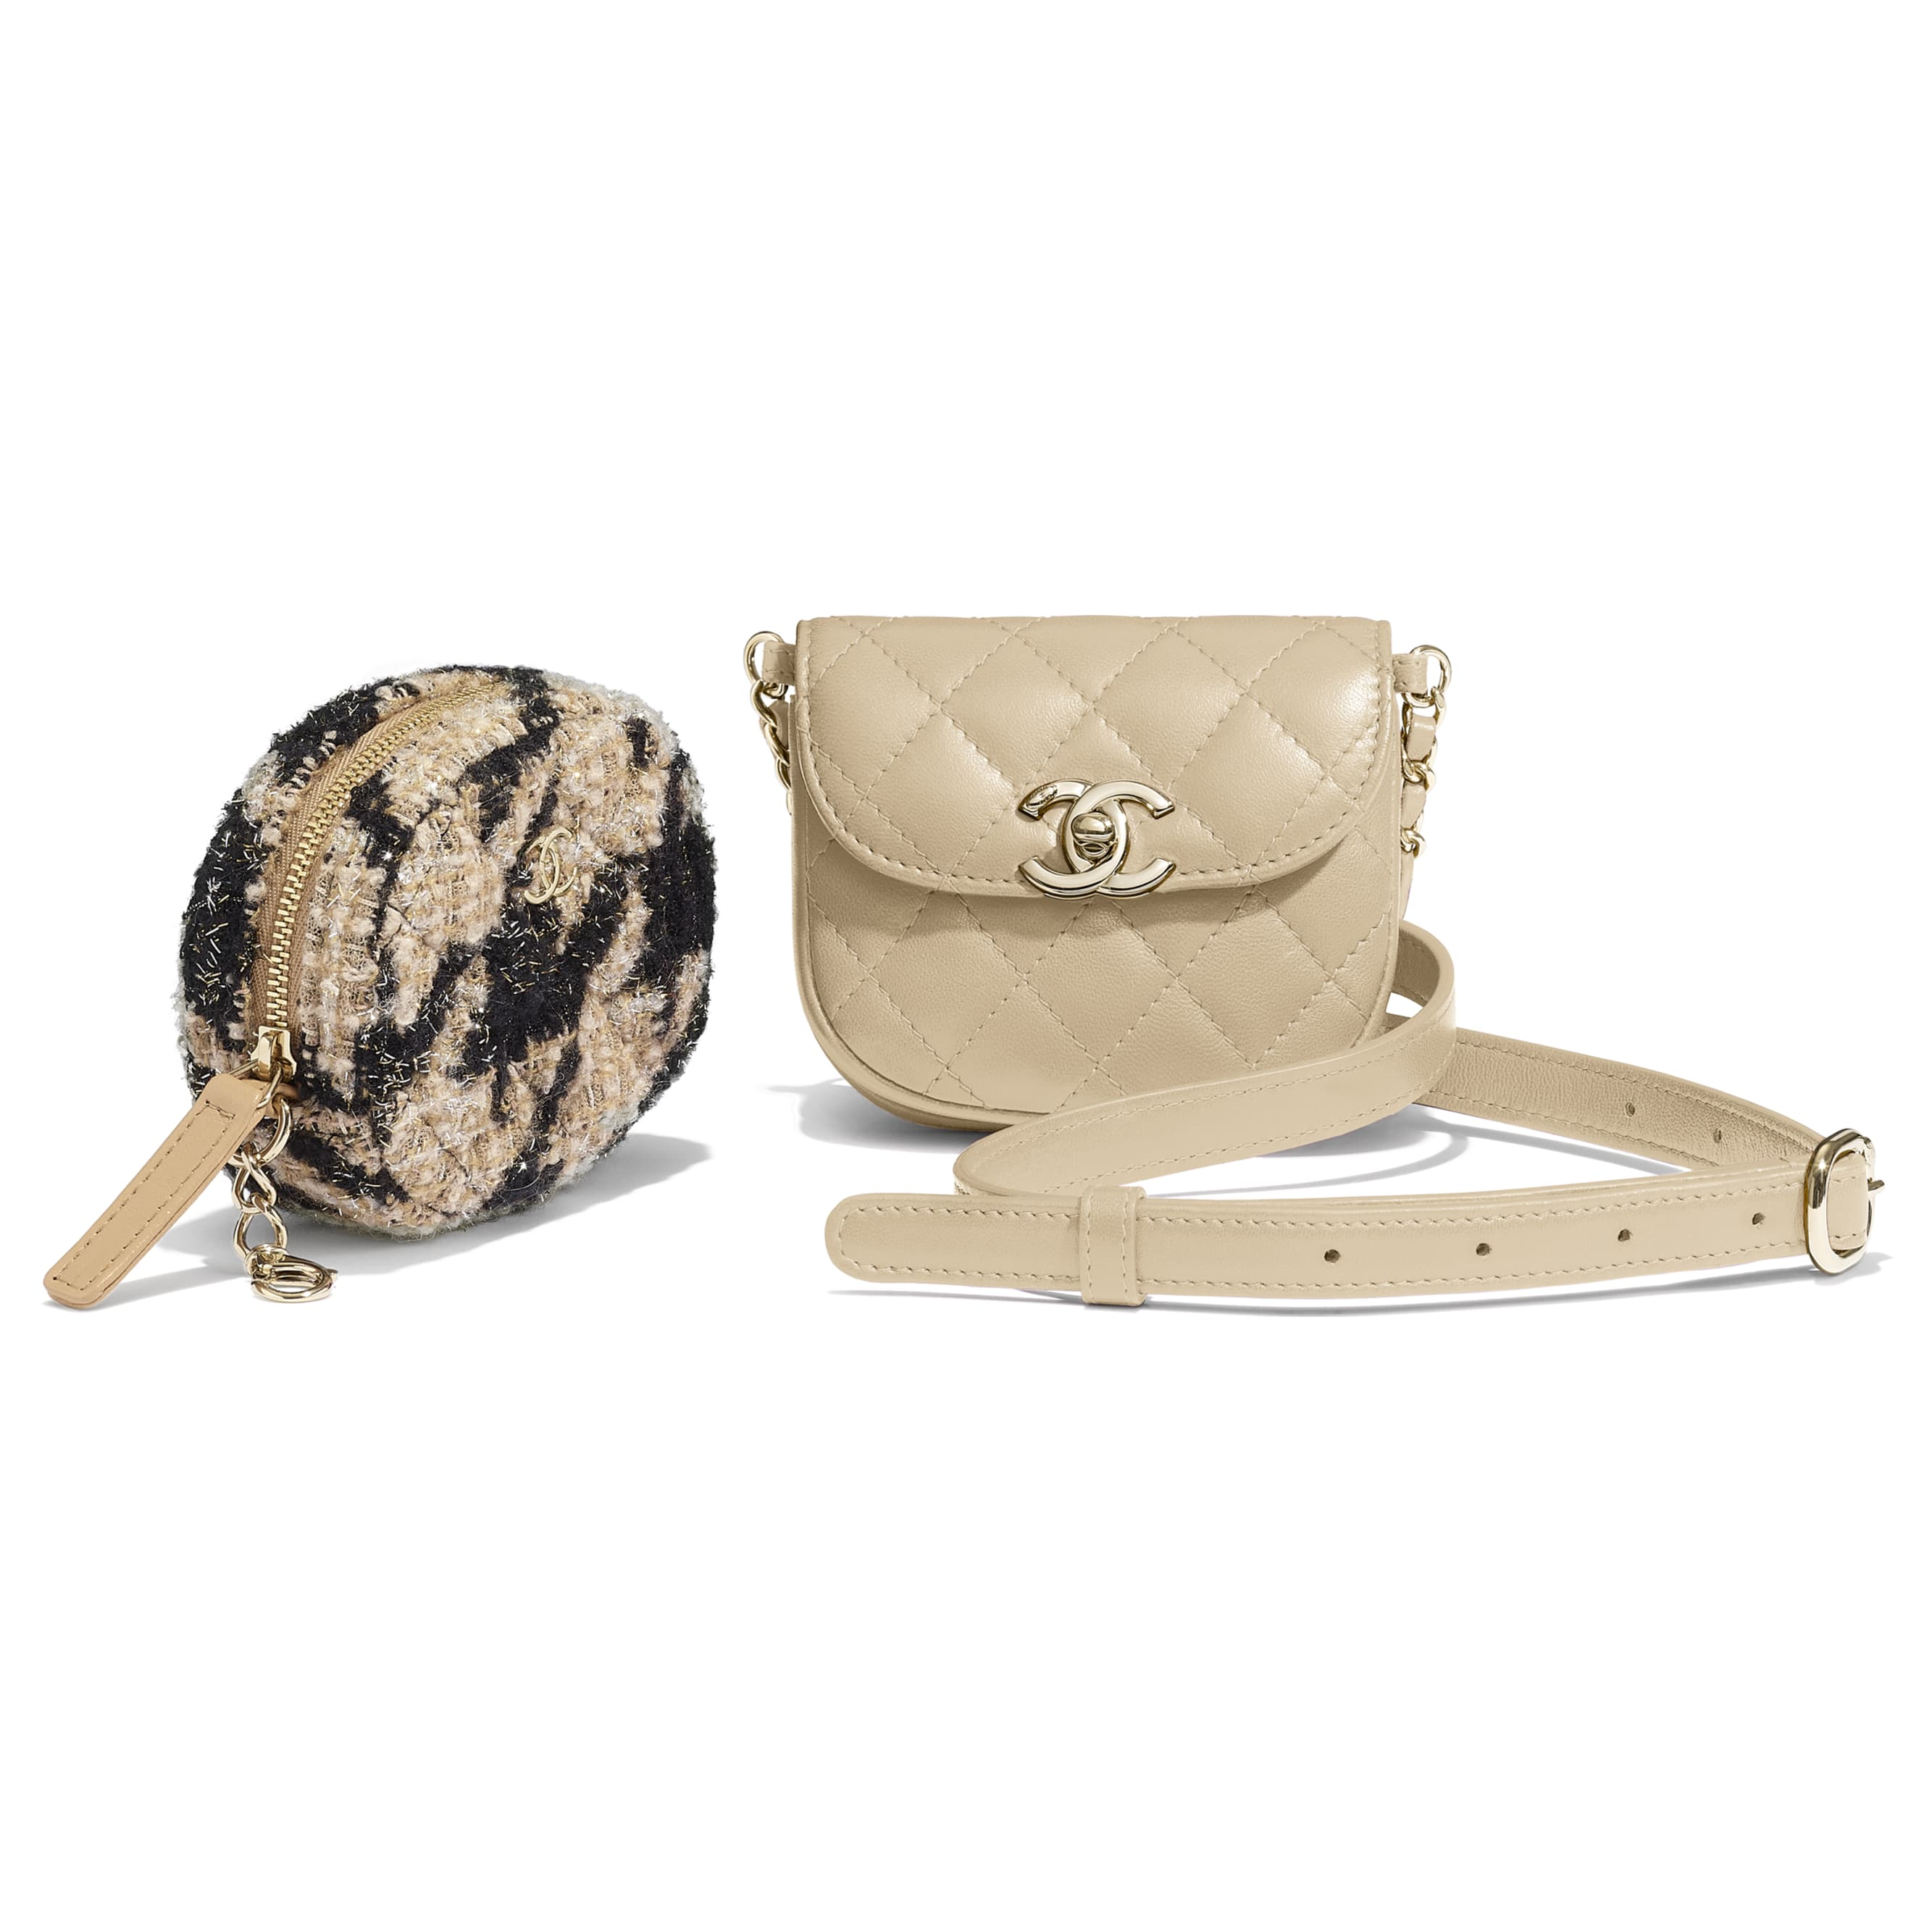 Waist Bag & Coin Purse - Beige & Black - Lambskin, Tweed & Gold-Tone Metal - Extra view - see standard sized version